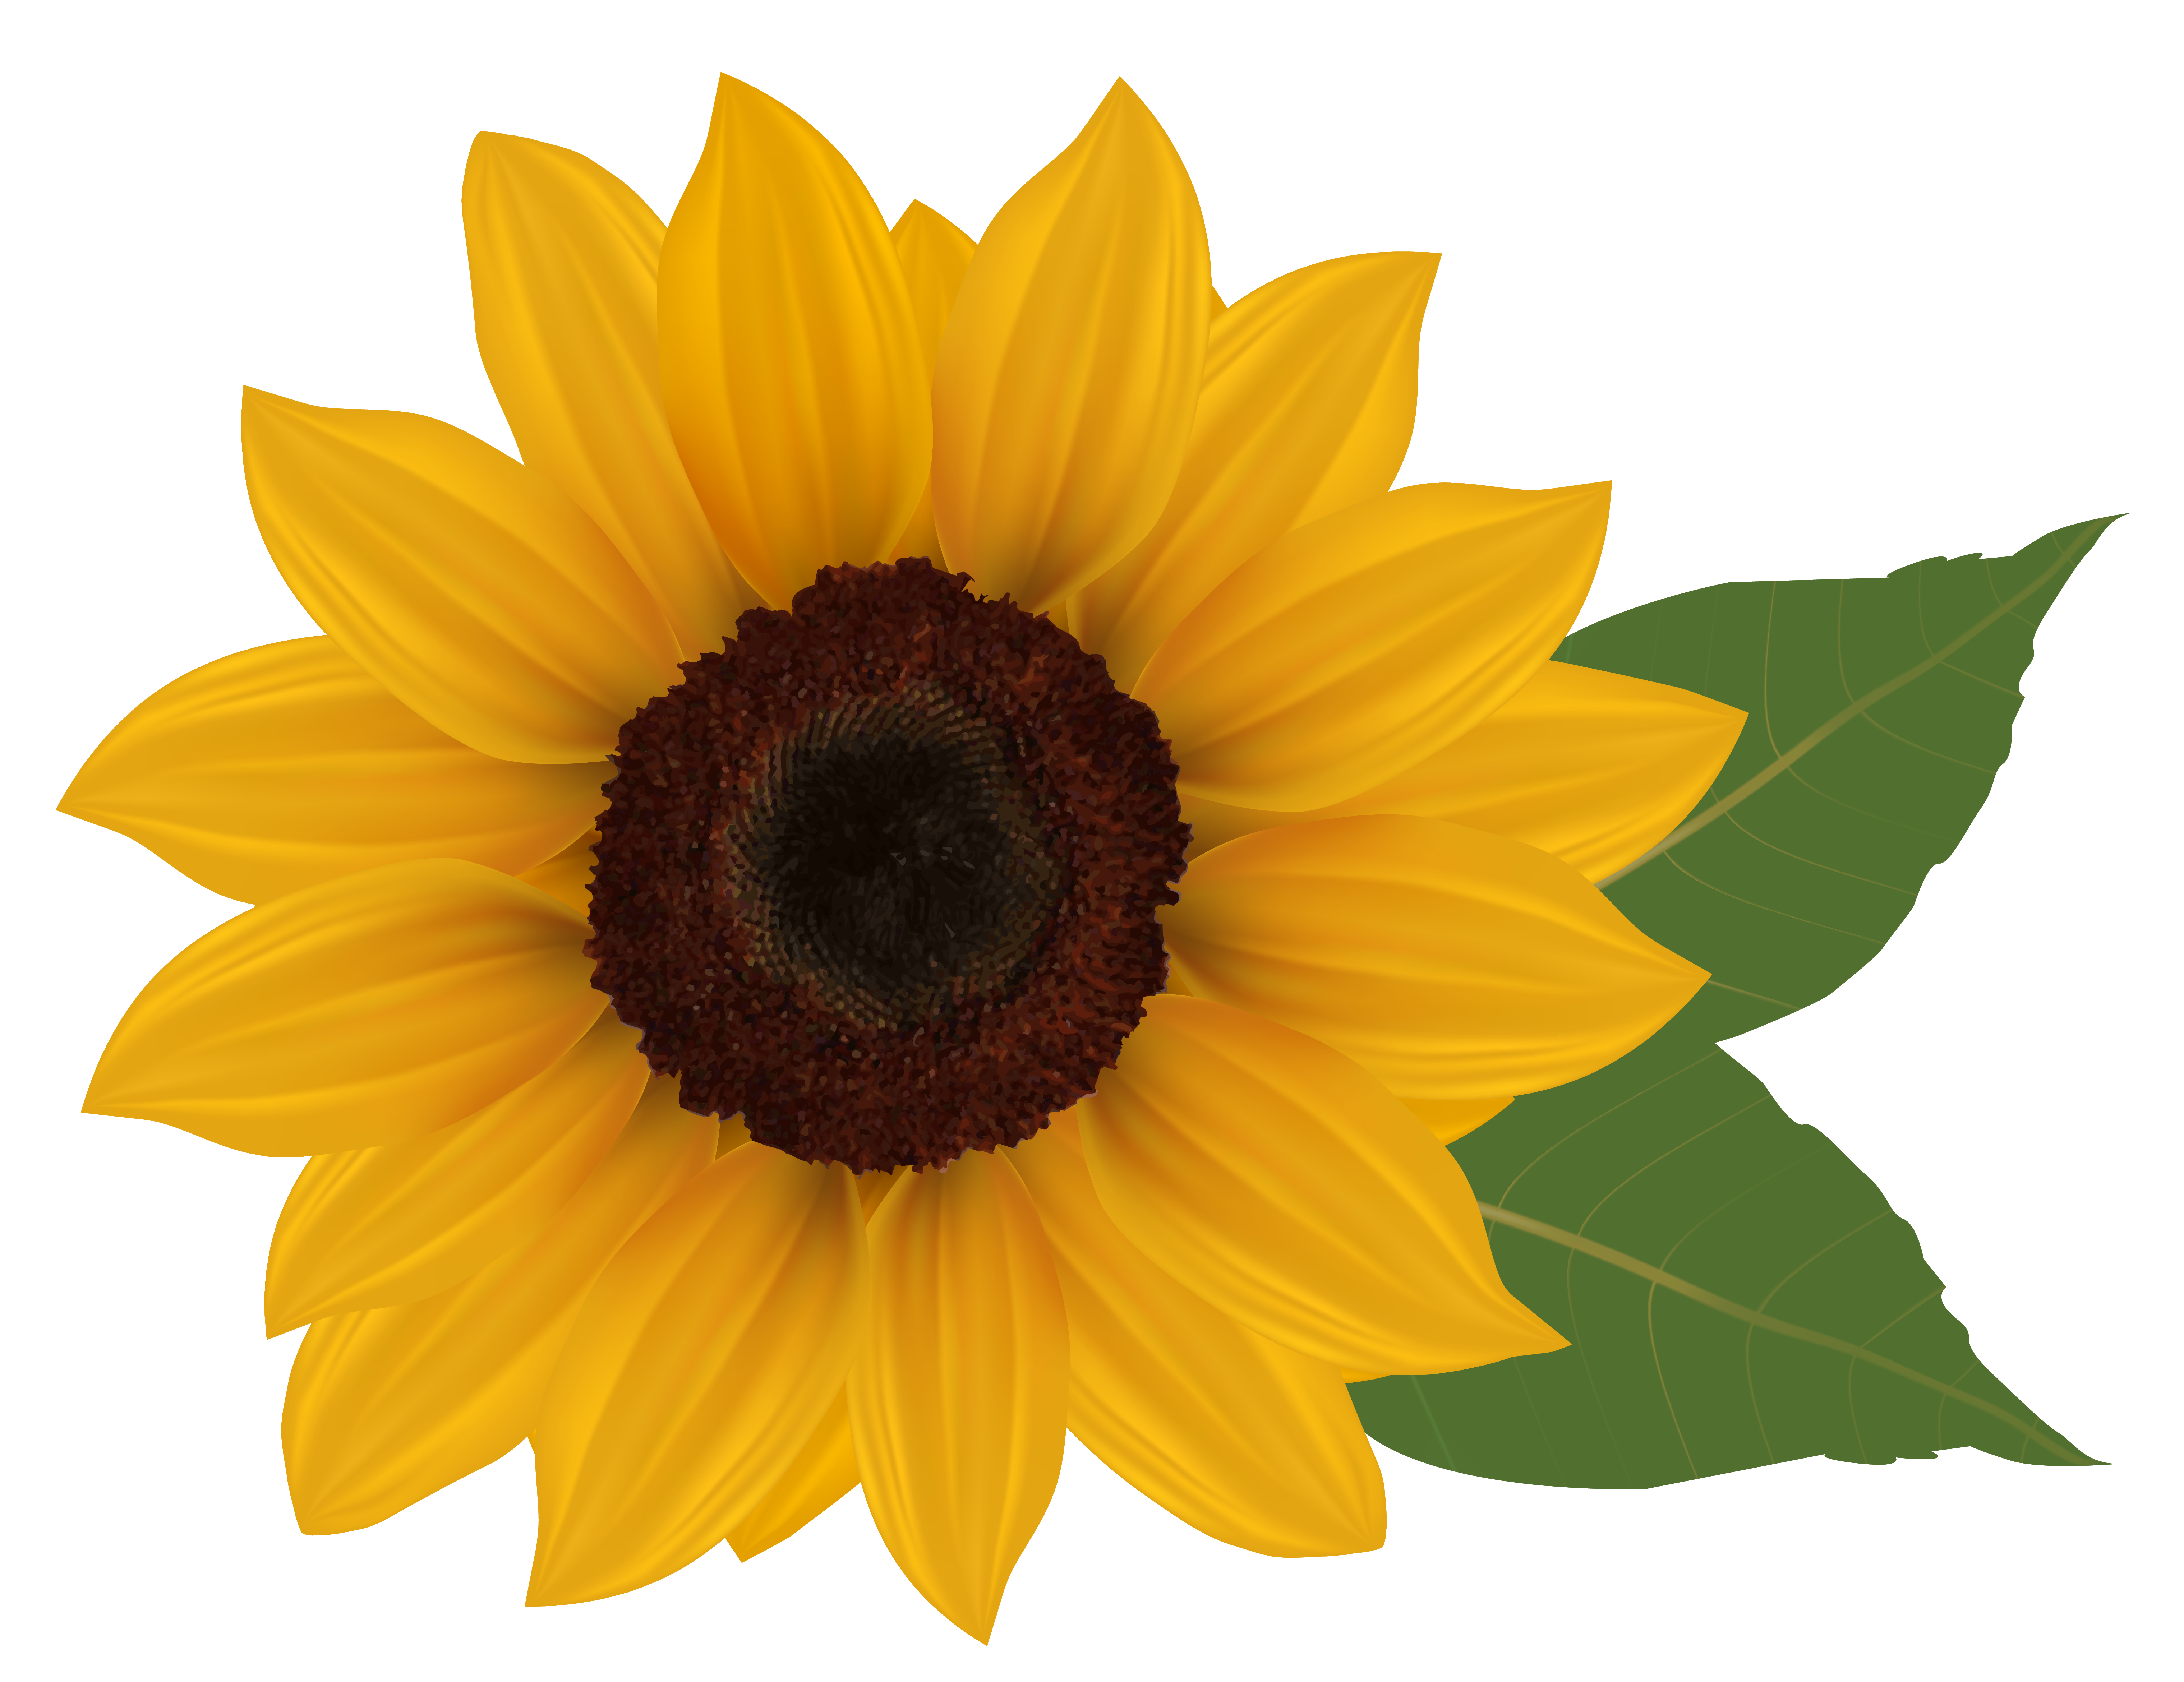 Drawing sunflowers helianthus. Sunflower profile clipart clipground